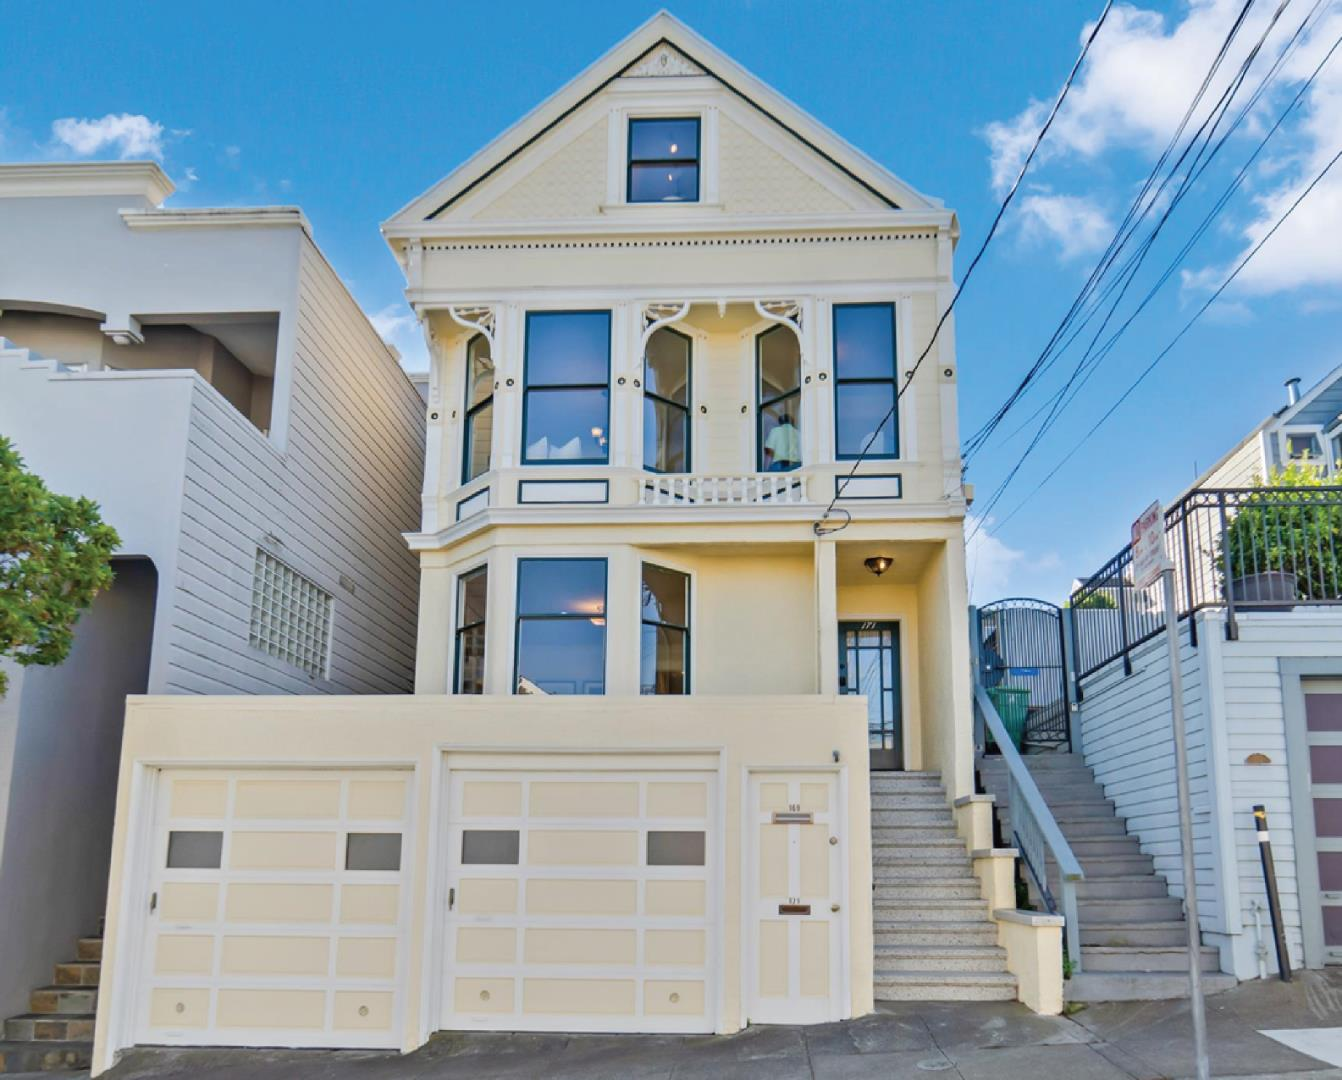 With $250K in upgrades, 169-171 Randall Street is an elegant Victorian duplex featuring a spacious, 3BR/2BA upper unit, a desirable 2BR/1BA lower unit, total 3,060 sf, and 2-car garage. The upper unit, with gorgeous panoramic view of downtown San Francisco, includes an inviting living space with soaring ceilings, abundant natural light, skylights, recessed lighting, refinished bathrooms and kitchen (granite countertops), and modern appliances (including washer/dryer). A sun-filled family room opens to a rebuilt deck and backyard garden with fruit trees and a 300 sf shed. The lower unit has a large living room, eat-in kitchen, and its own laundry room. The house is in Fairmount Heights, blocks from MUNI buses and light rail and corporate shuttle stops, restaurants, coffee shops, and markets. Larger shopping districts are within a mile. Nearby Upper Noe Recreation Center and Glen Canyon Recreation Area offer outdoor fun with kid-friendly facilities. BART and I-280 are readily accessible.